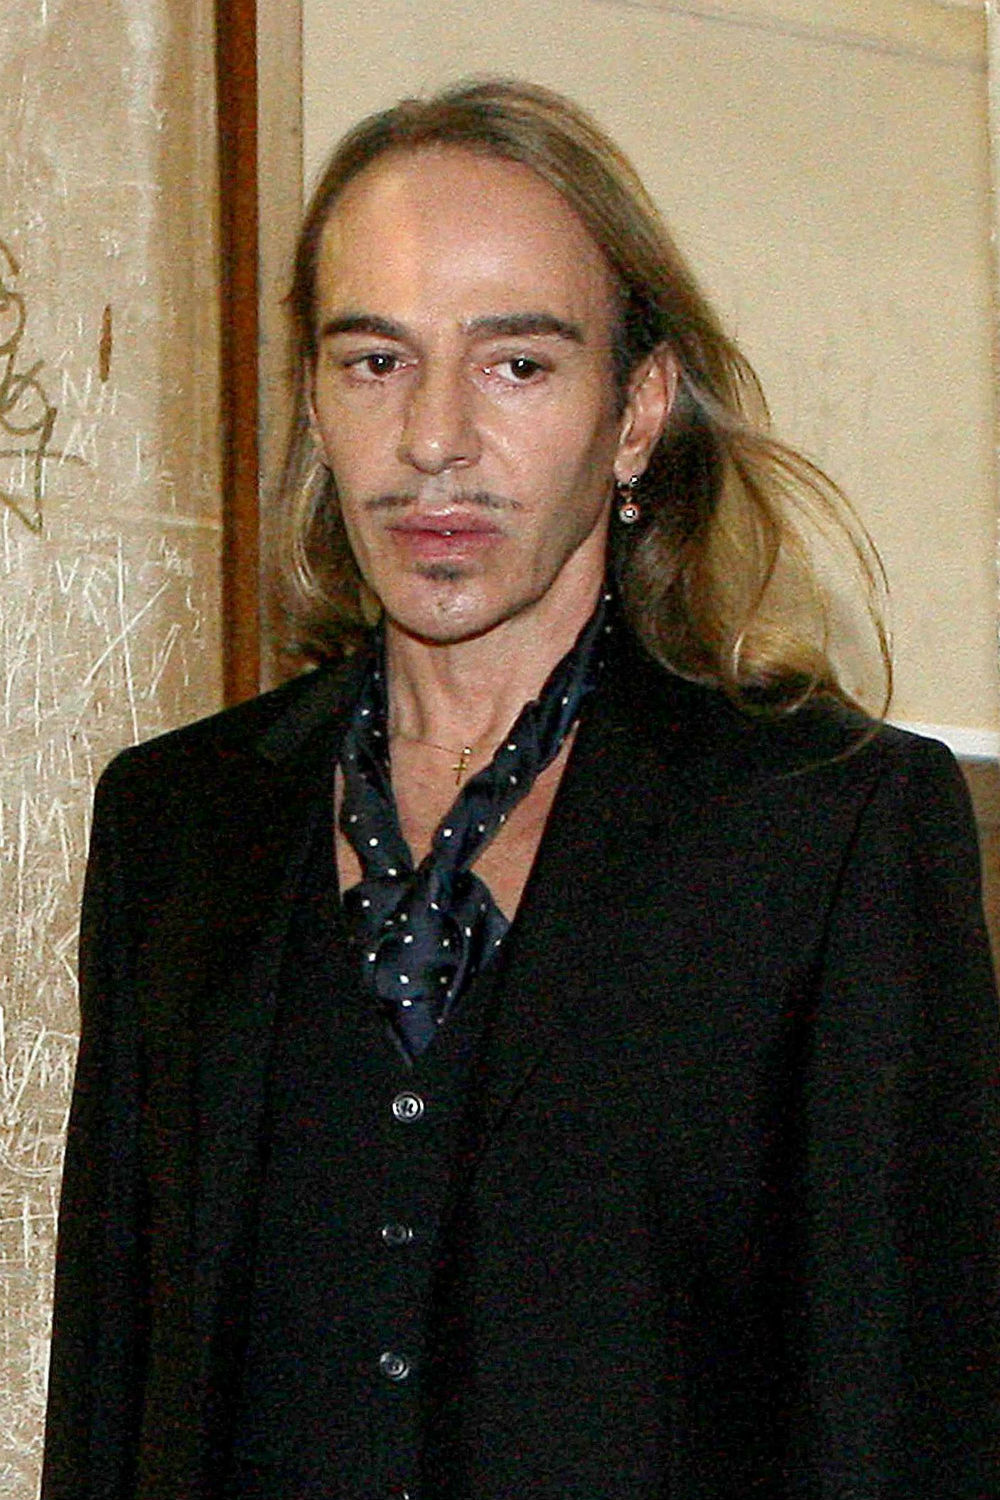 john galliano u2019s legal battle with dior isn u2019t over yet u2026